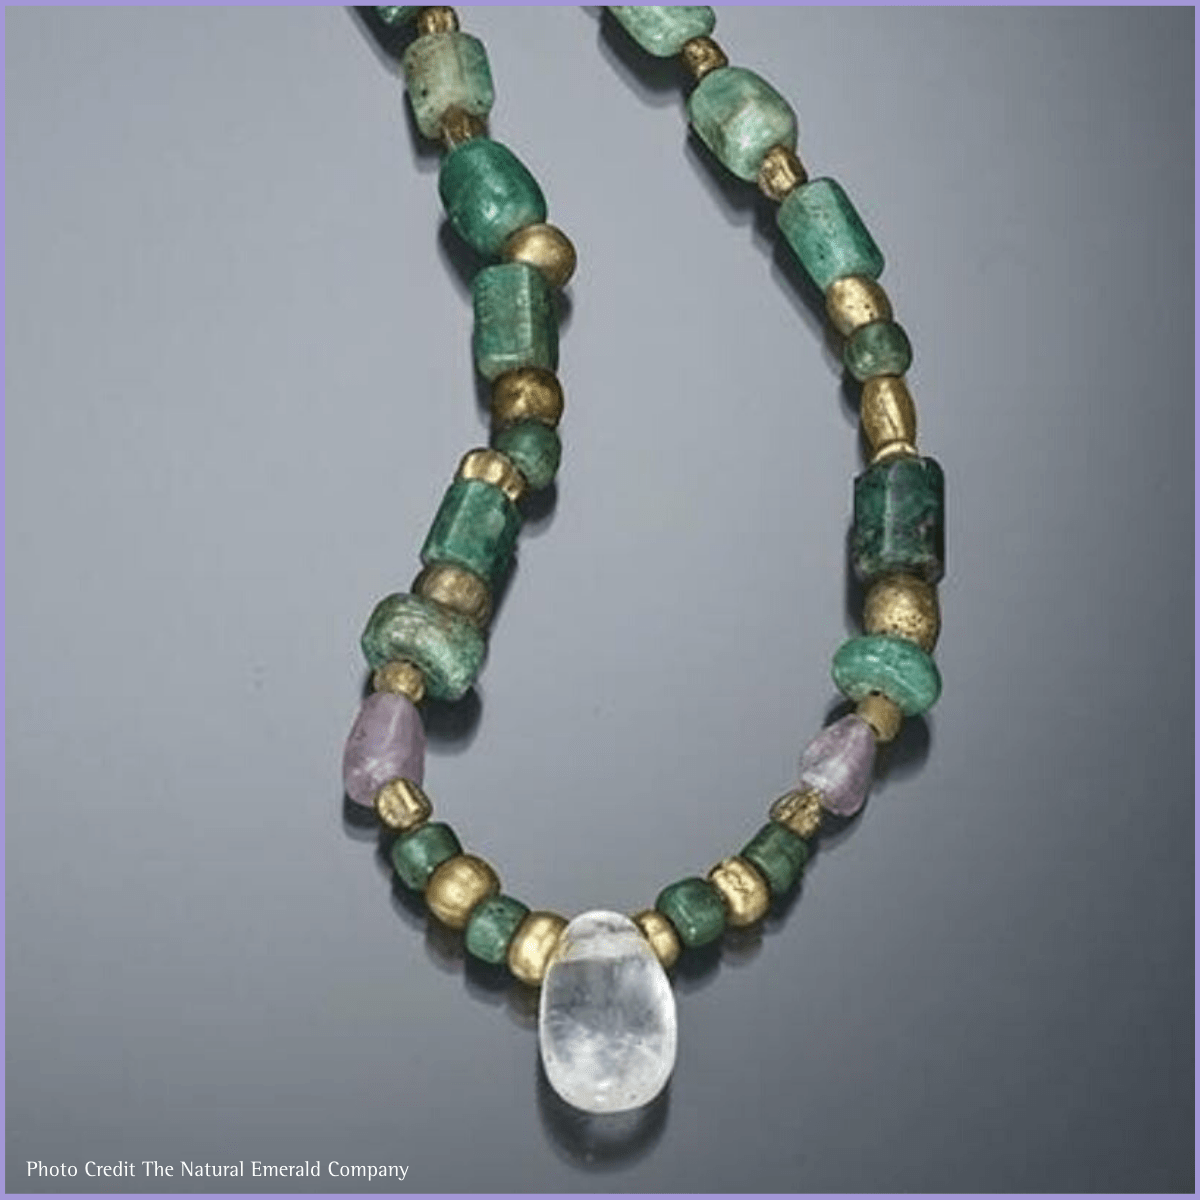 Ancient emerald jewellery